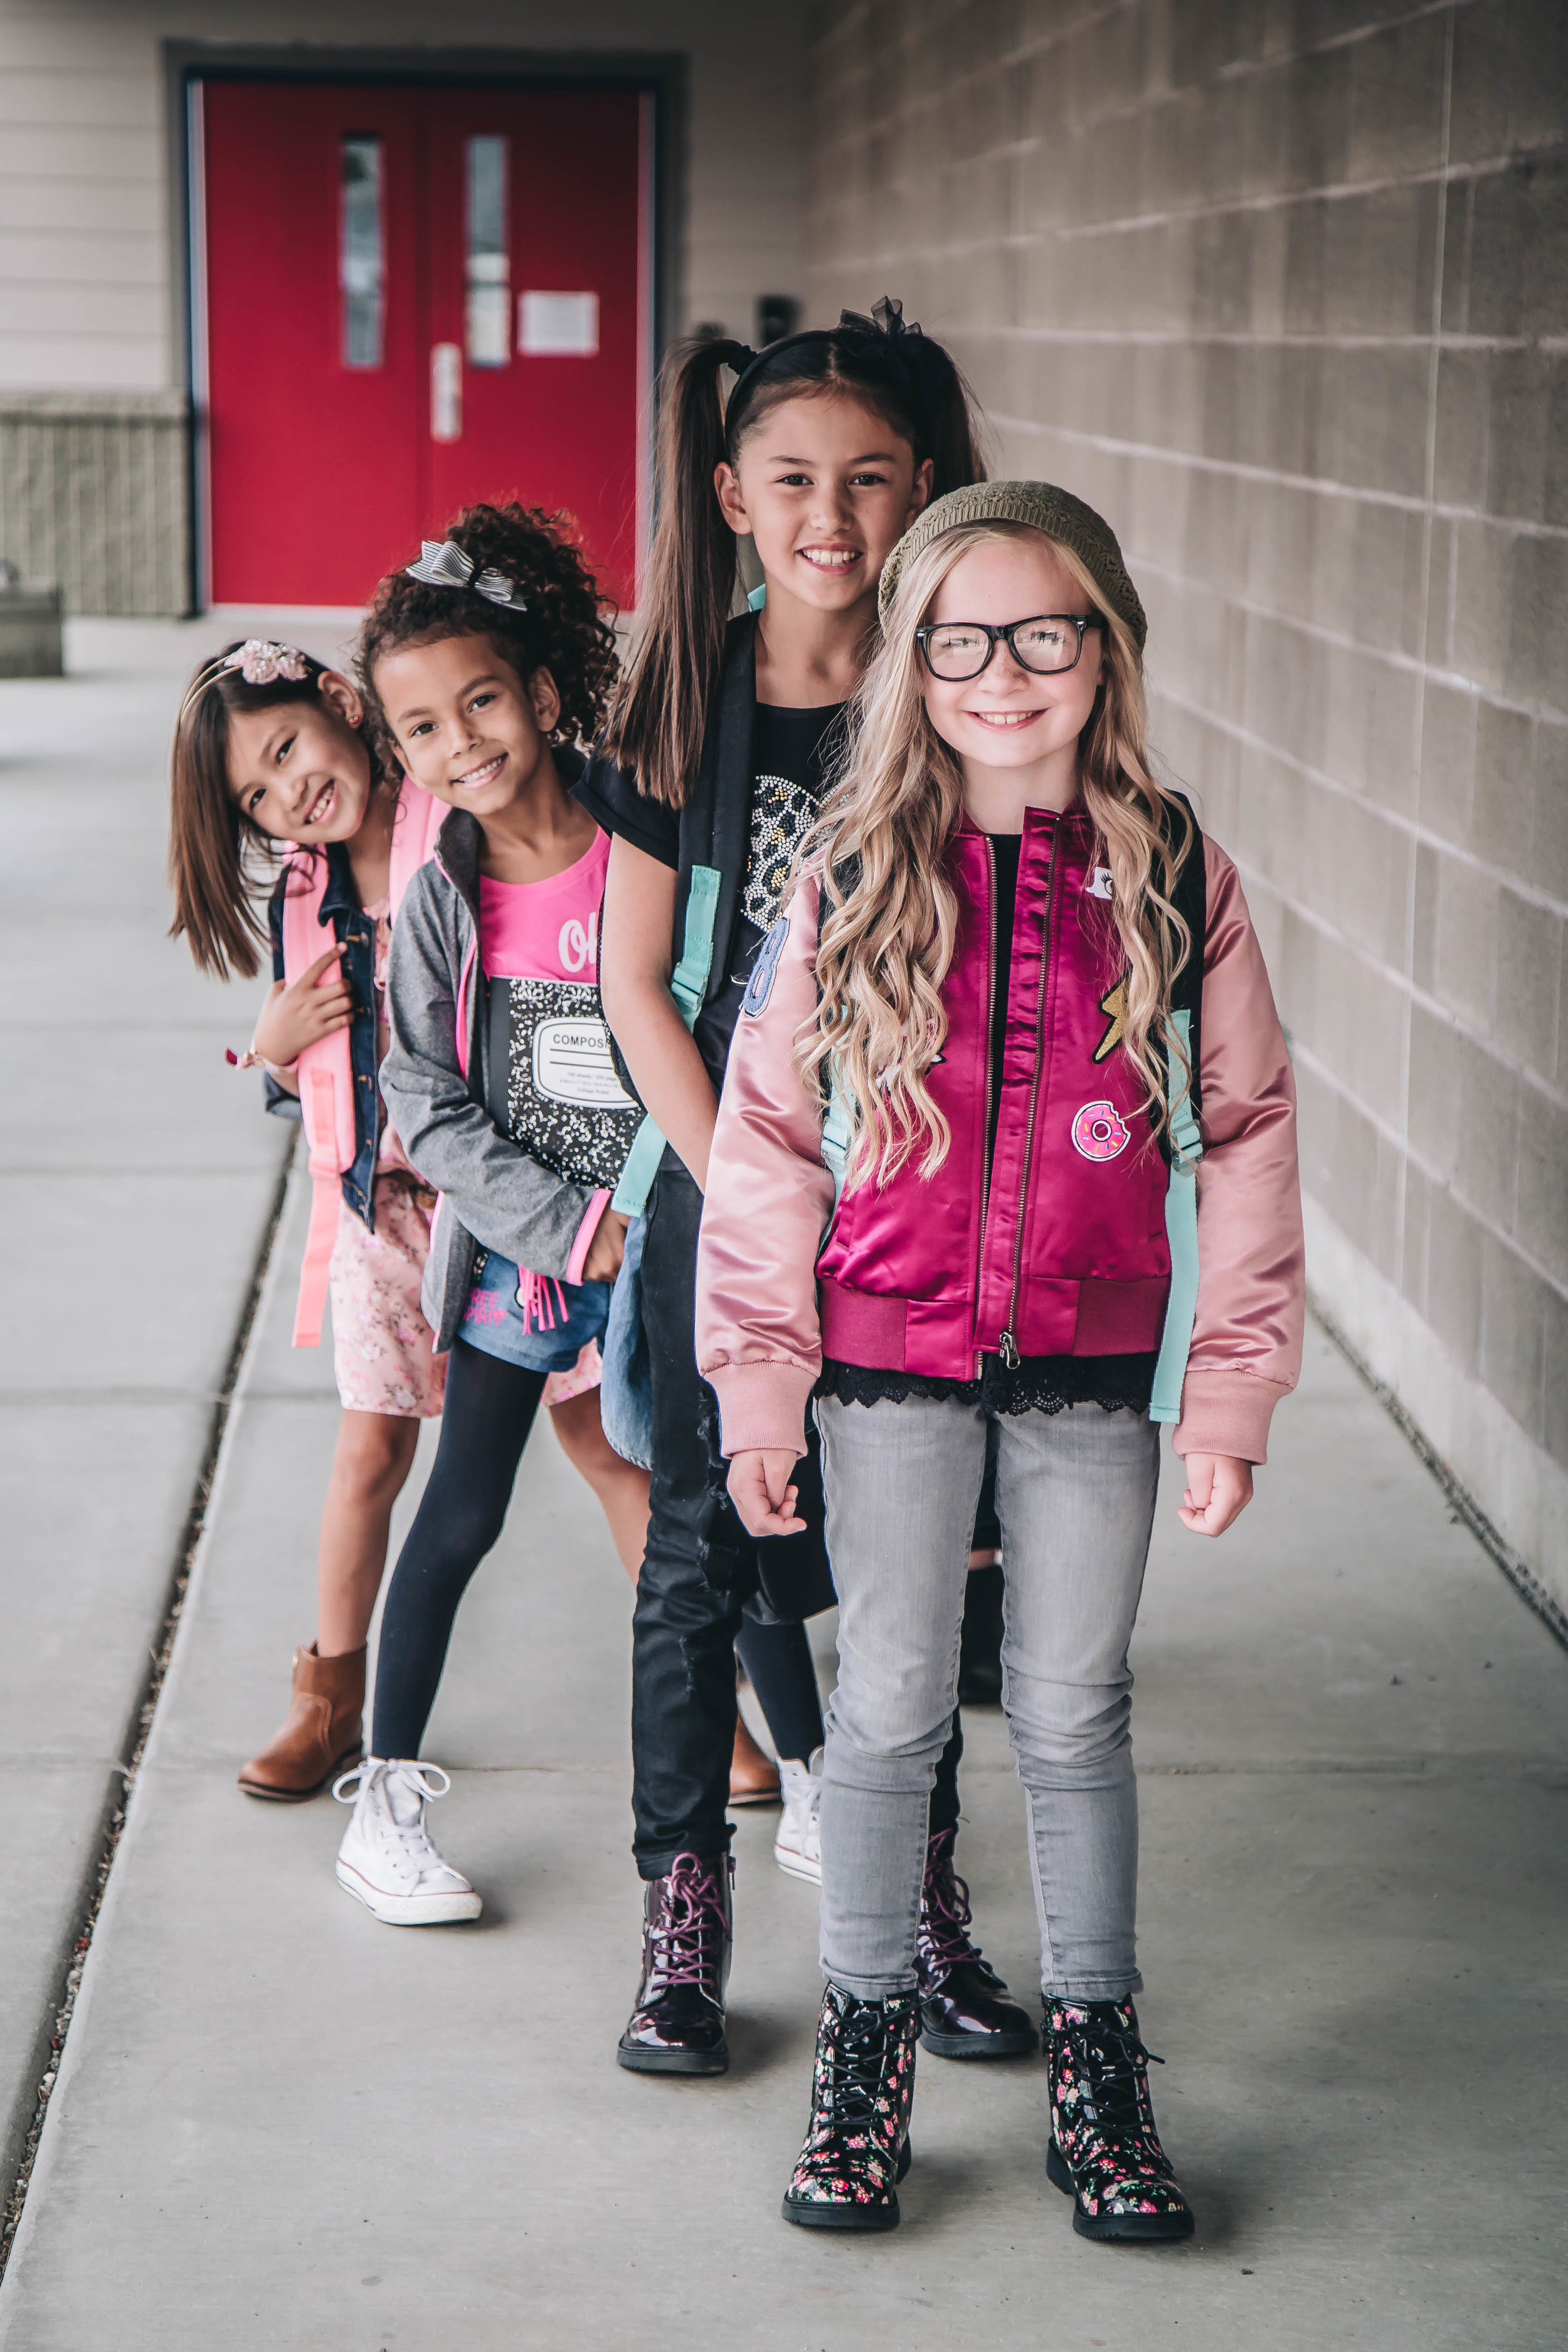 Geek Goals - Who says nerdy can't be cool?! Scout is dressed to impress (her science class buddies) in her brand new varsity bomber jacket. This mathlete is on her way to earning her letter in academics and she's proud of it! She is layered up in a trendy lace hem knit top, granite jeggings, and floral combat boots. Scout is looking confident and cool on her way earning straight A's! #girlgenius